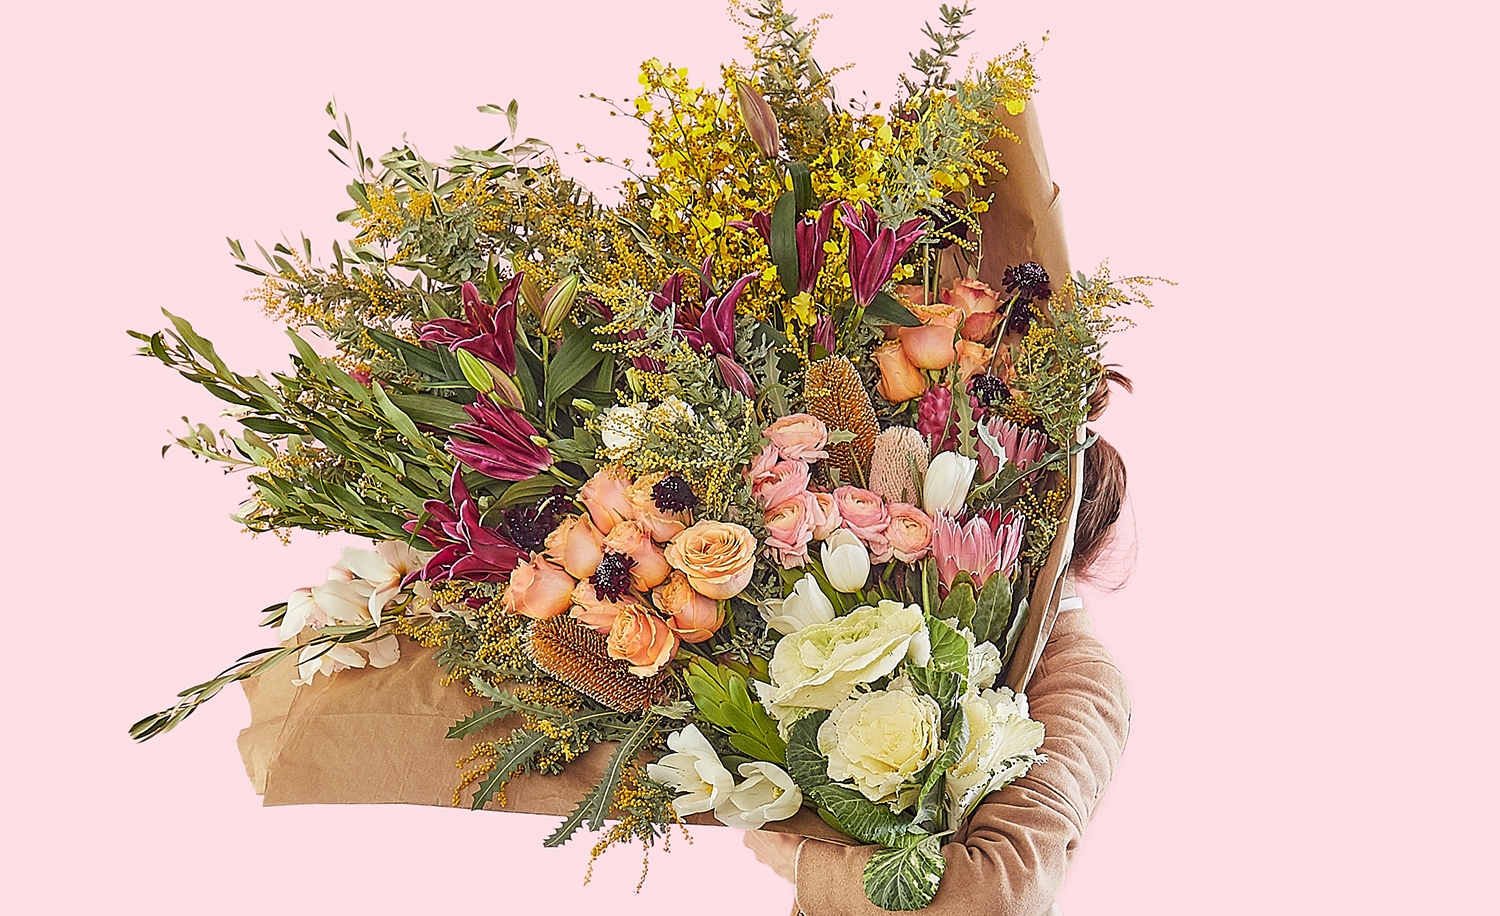 Extra aejo chocolates and a human size flower bouquet for anyone if youd rather say it with flowers same day bouquet company bloomthat has a 499 arrangement its calling the most extra bouquet izmirmasajfo